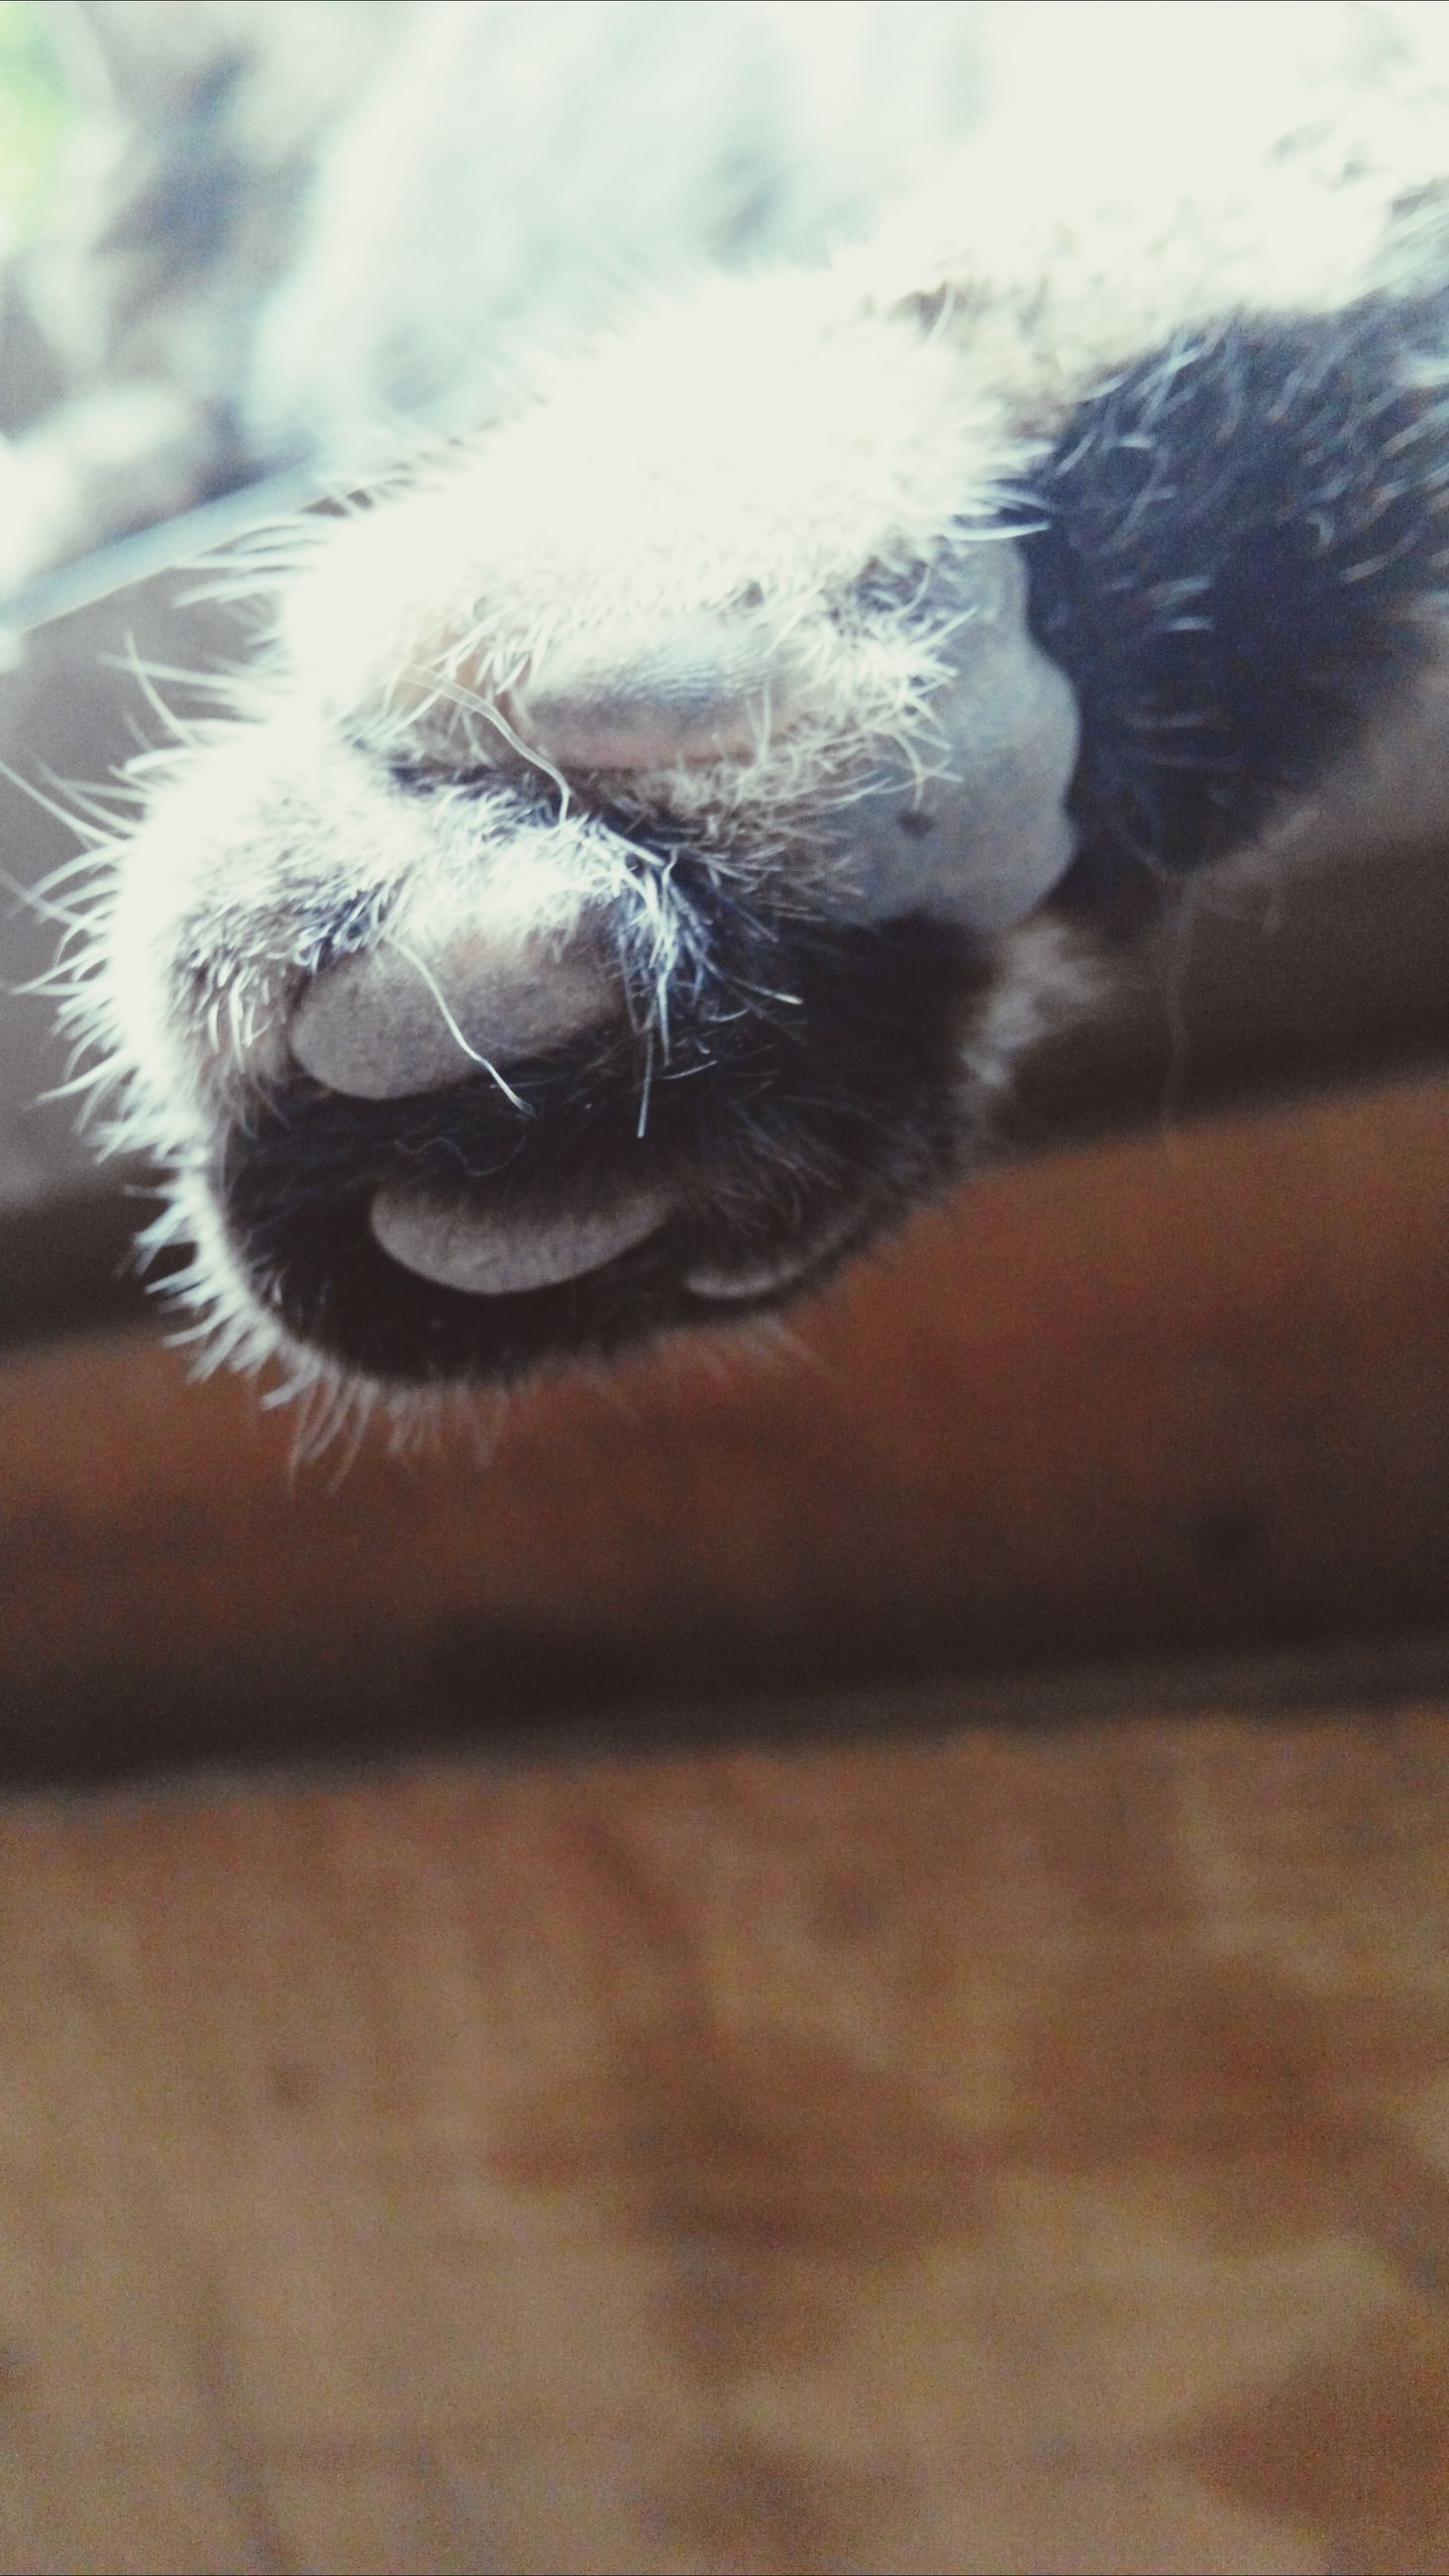 one animal, animal themes, close-up, pets, selective focus, indoors, domestic animals, focus on foreground, mammal, part of, animal body part, animal head, dog, one person, unrecognizable person, day, wildlife, cropped